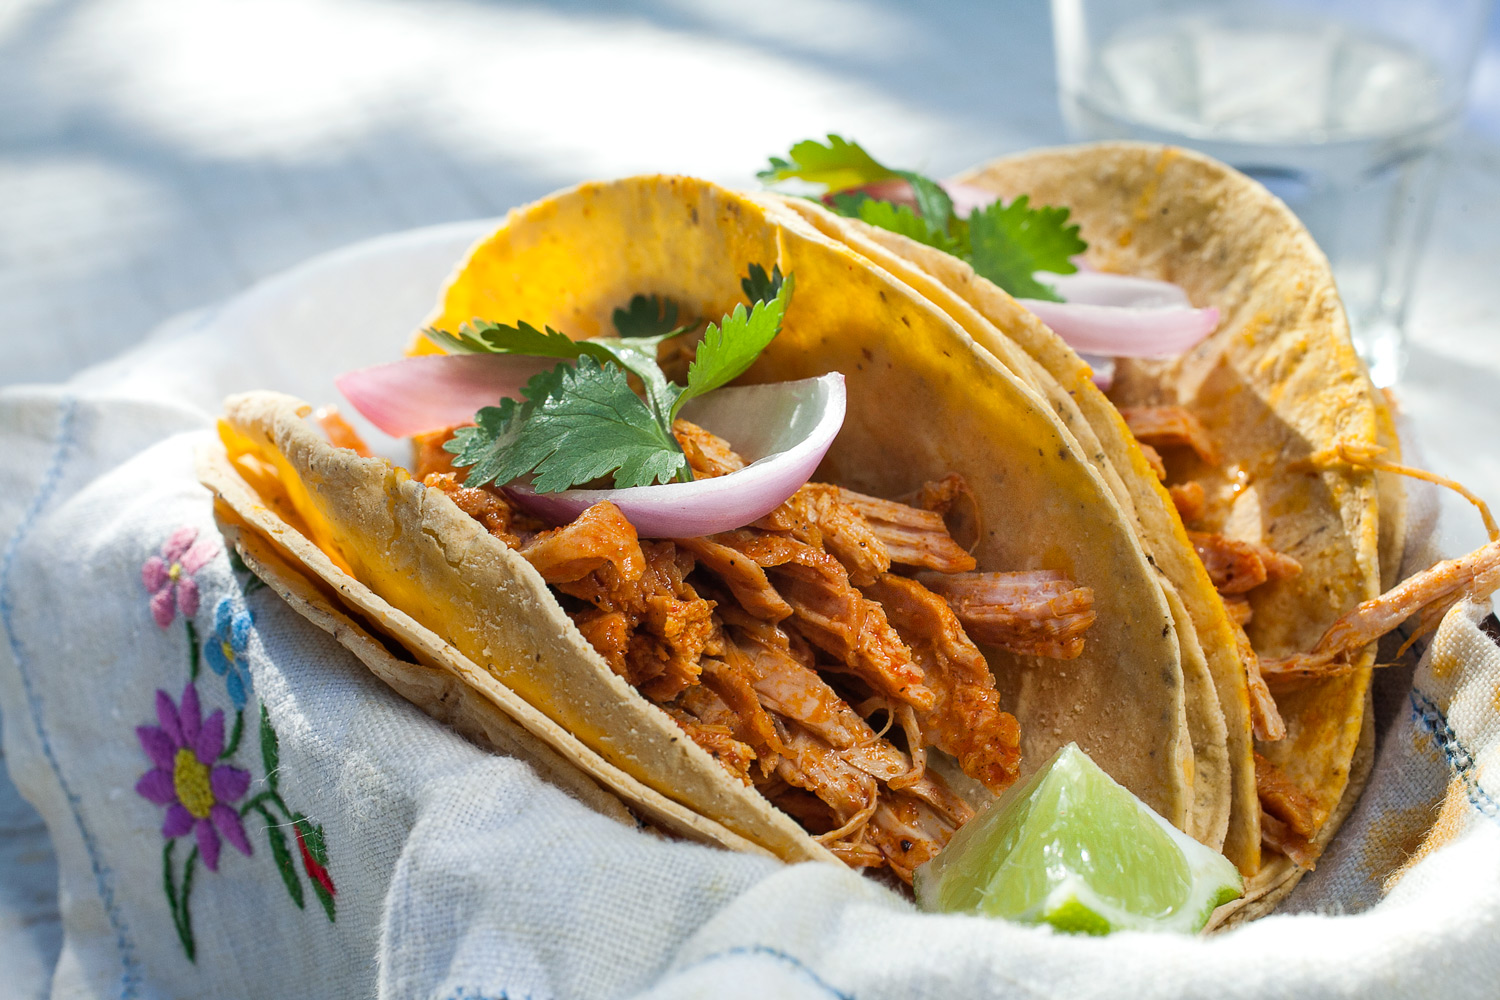 Pibil-Style Pulled Pork